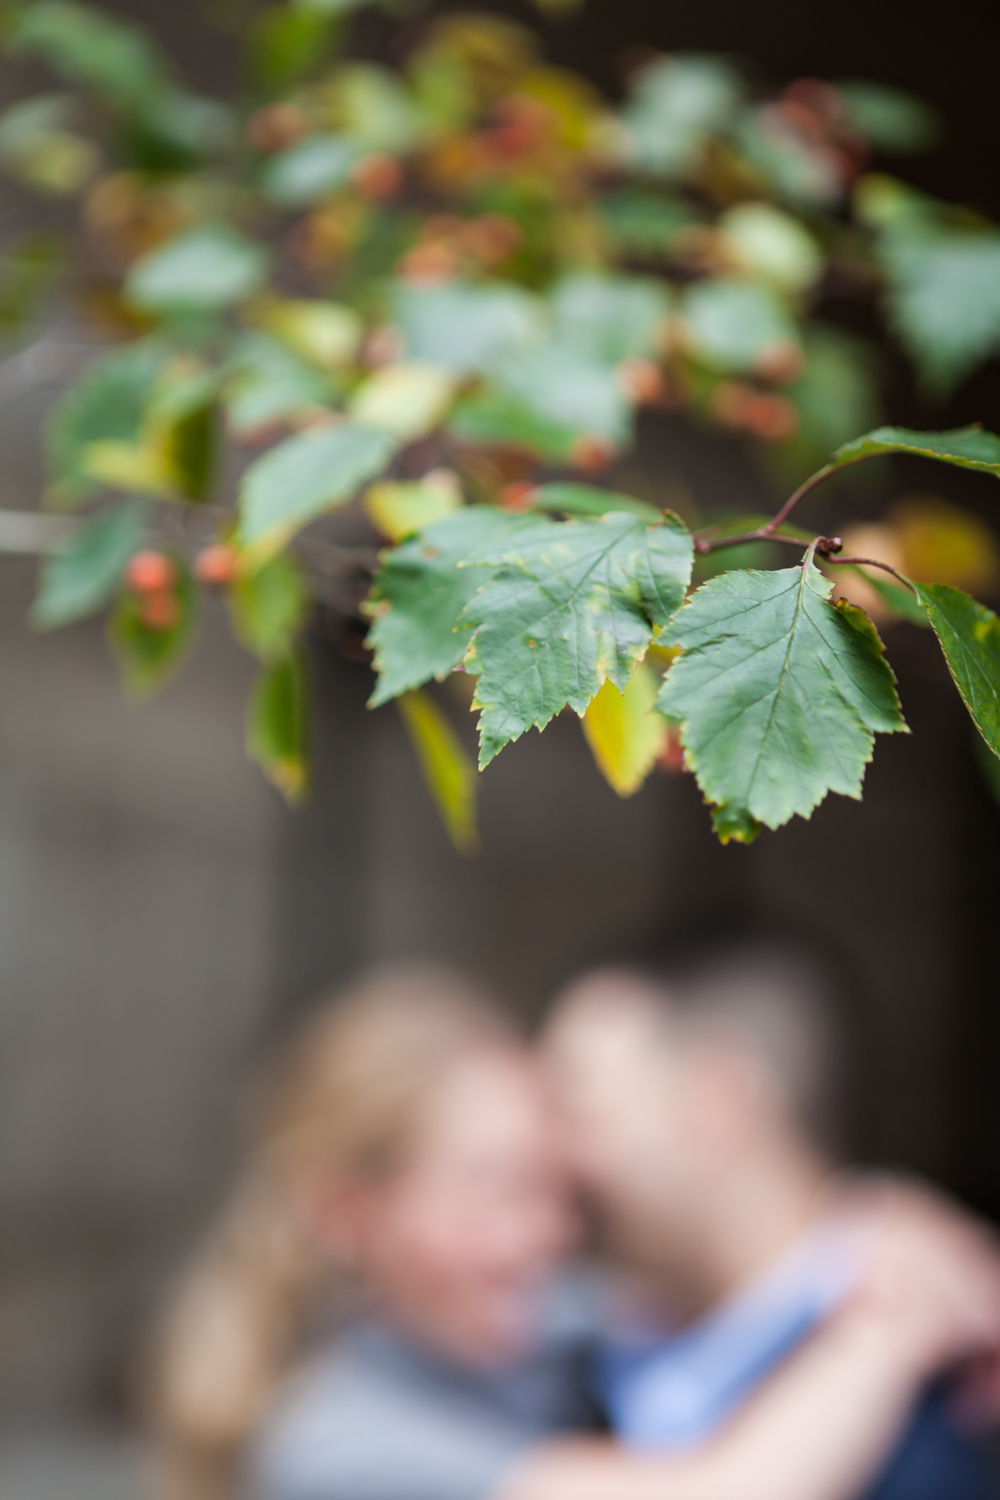 Leaves in focus with couple kissing in background out of focus